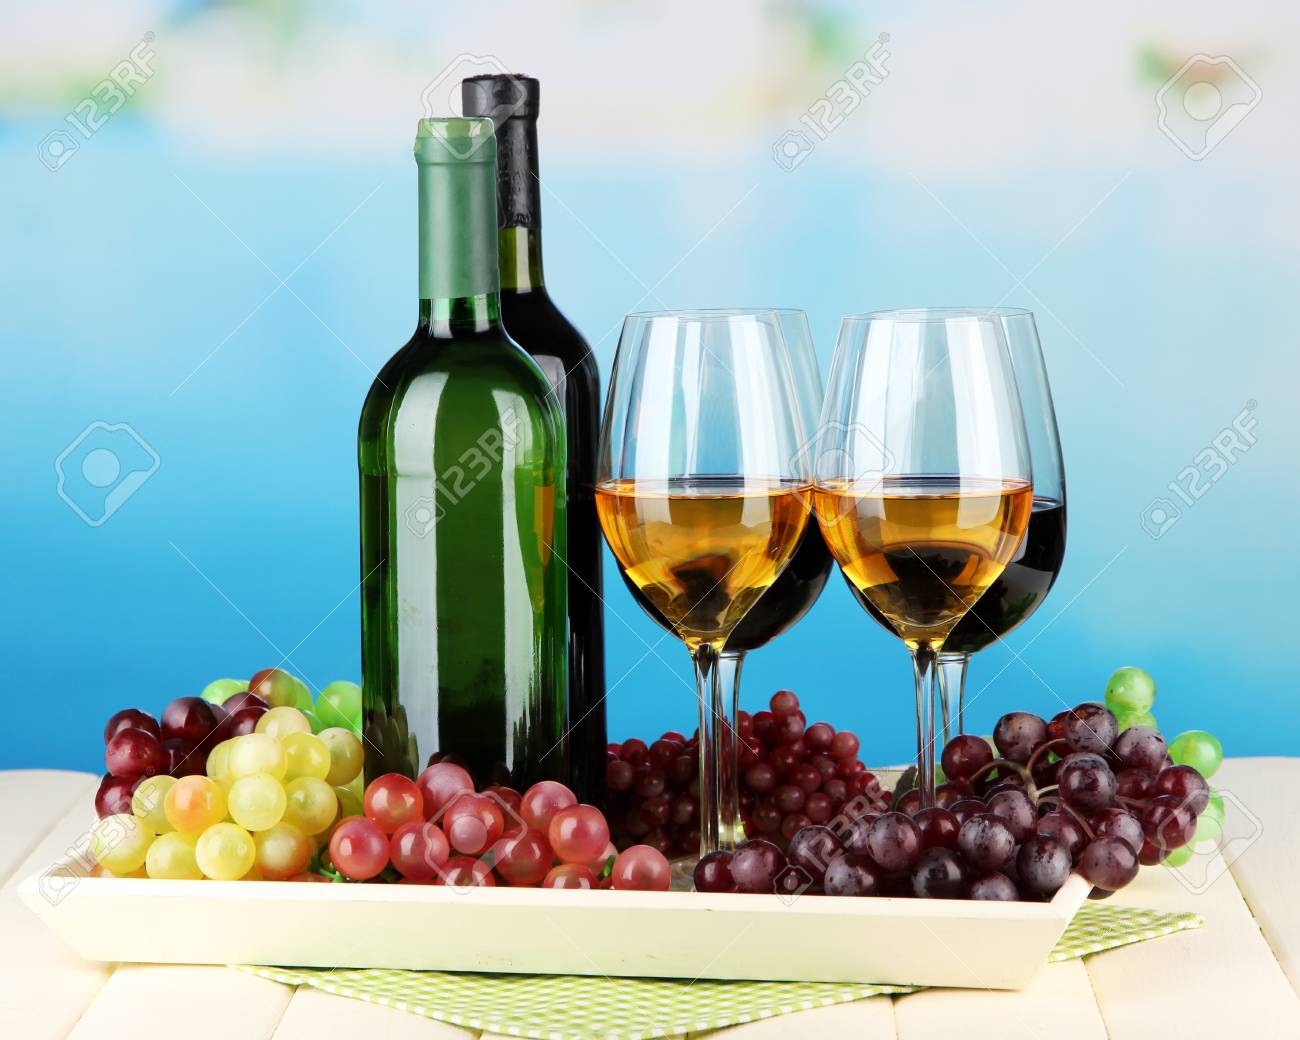 Wine bottles and glasses of wine on tray, on bright background Stock Photo - 21828695